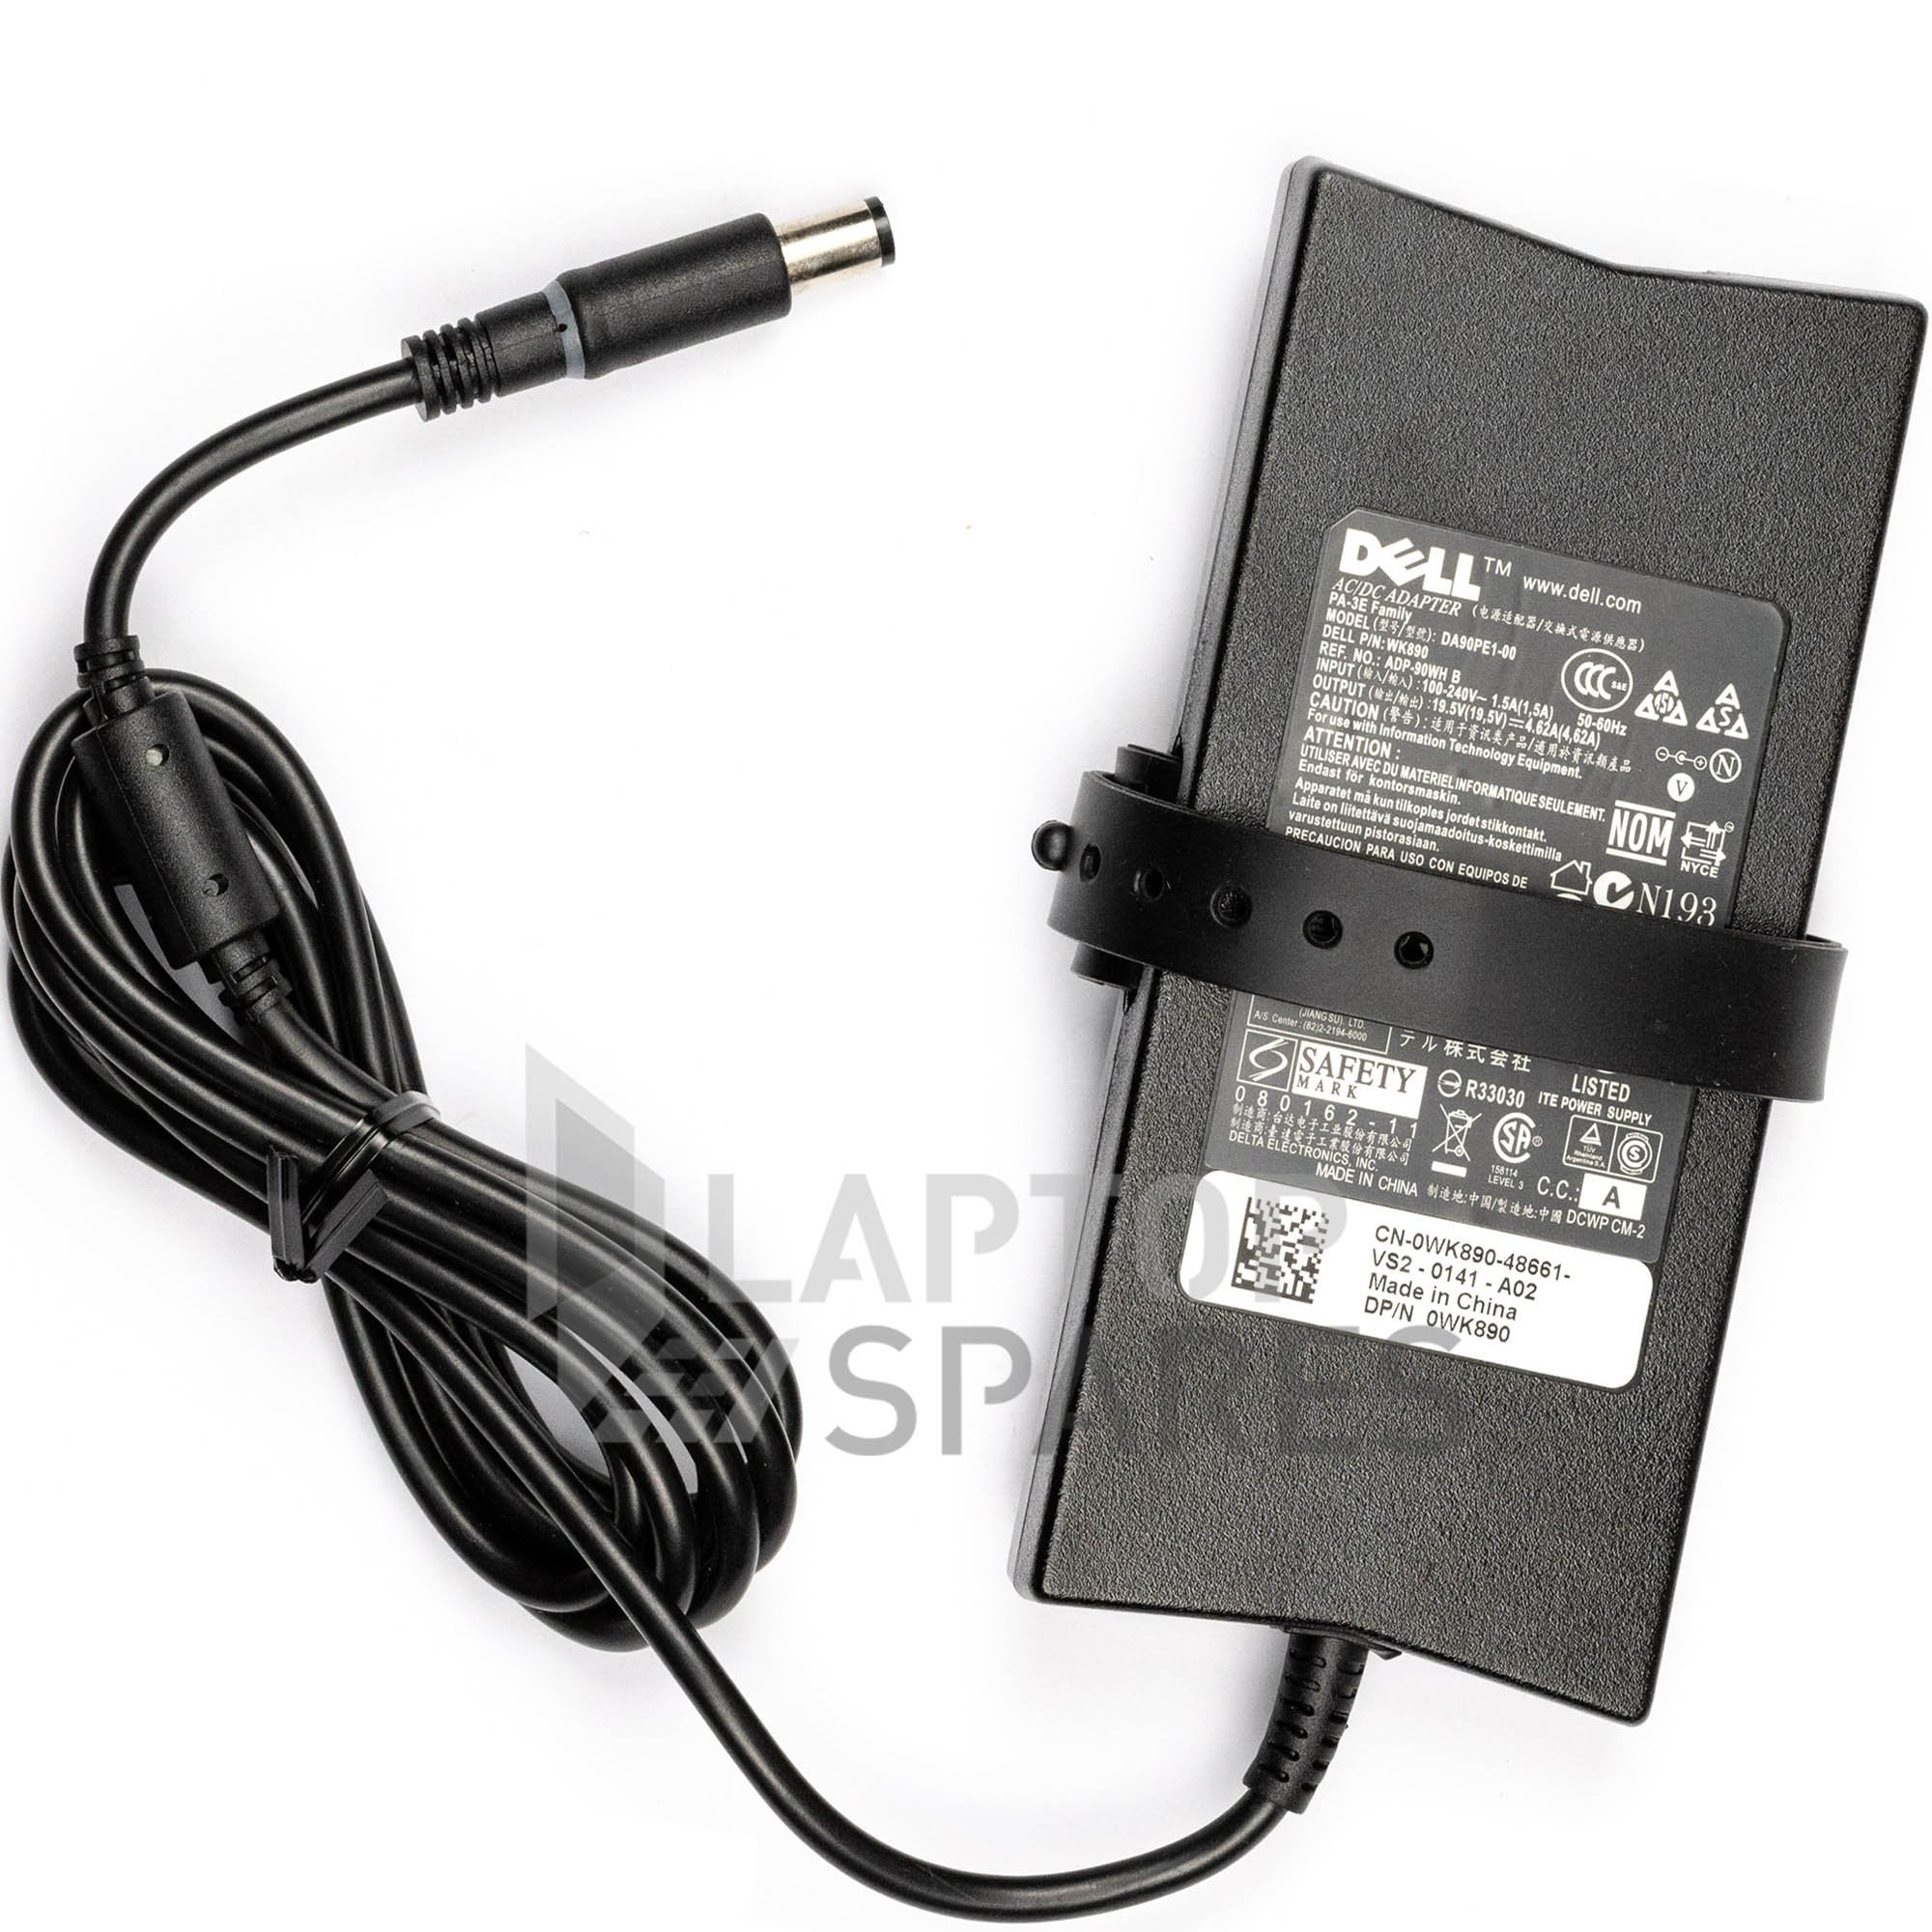 Dell Vostro 1540 1550 Laptop Slim AC Adapter Charger